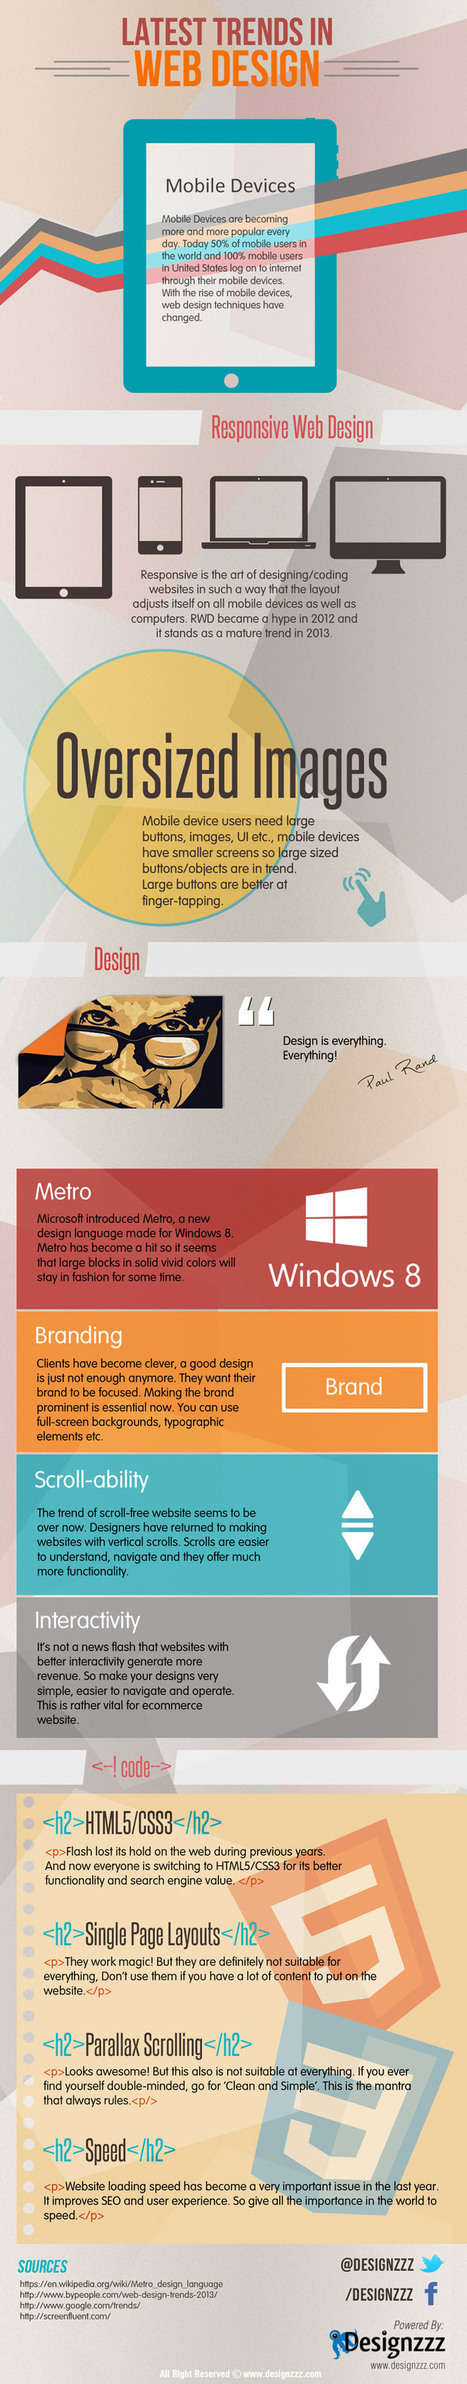 Latest Trends in Web Design [Infographic] | Design Revolution | Scoop.it